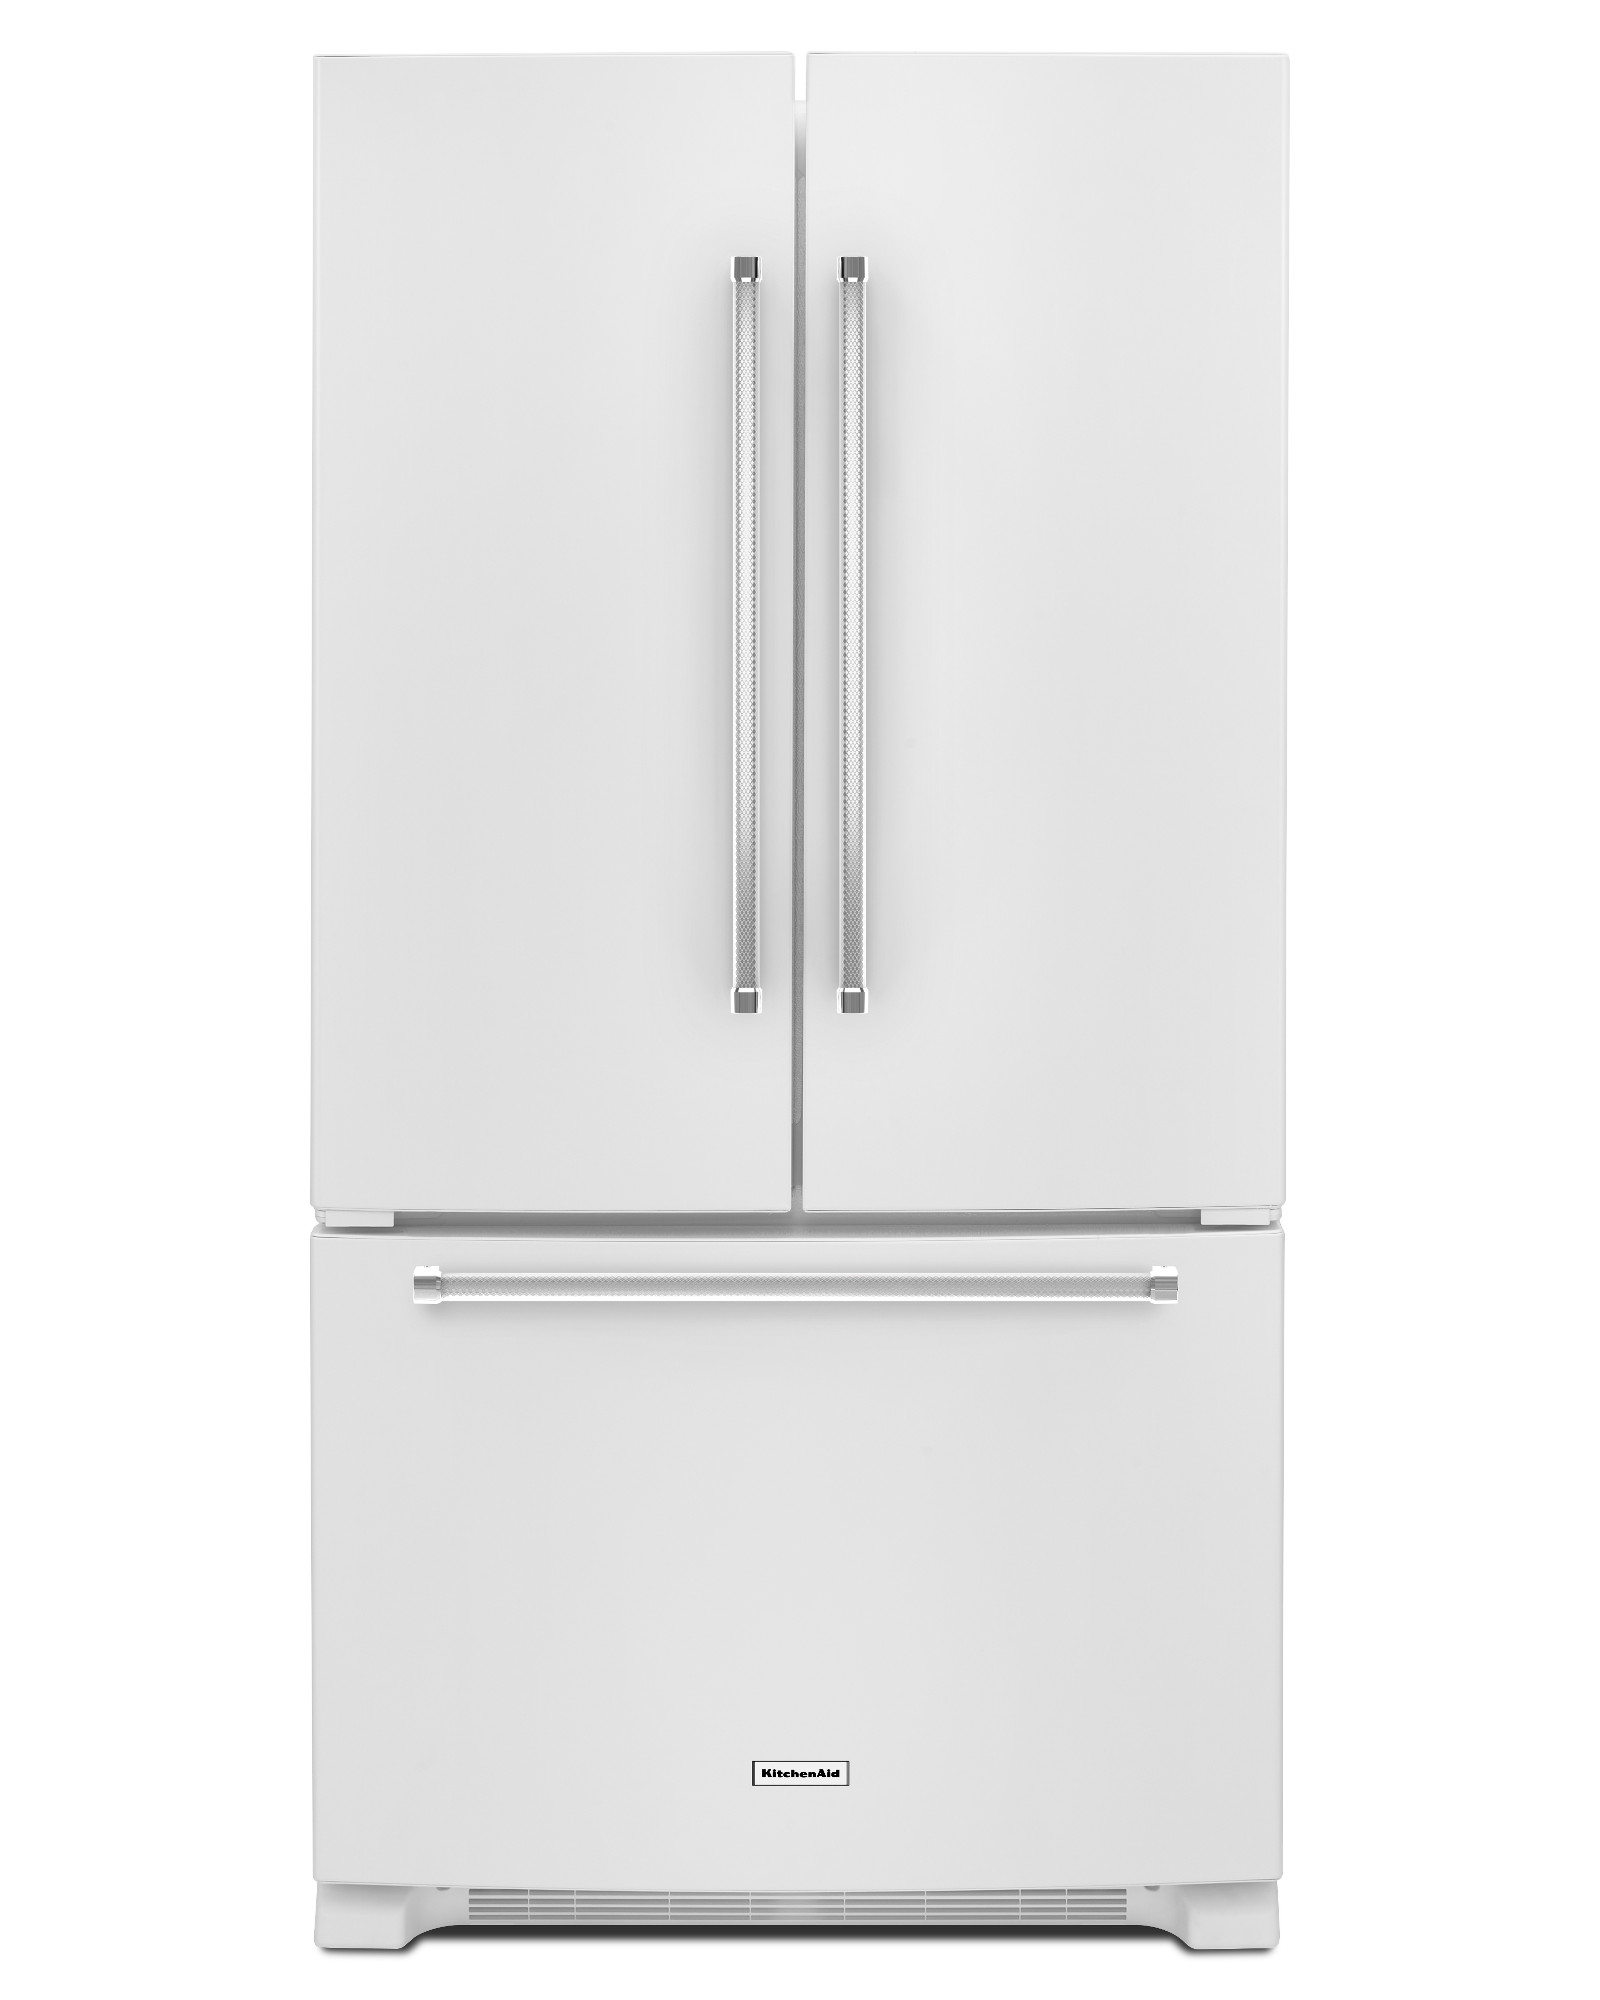 KitchenAid KRFC300EWH 20 cu. ft. Counter-Depth French Door Refrigerator - White